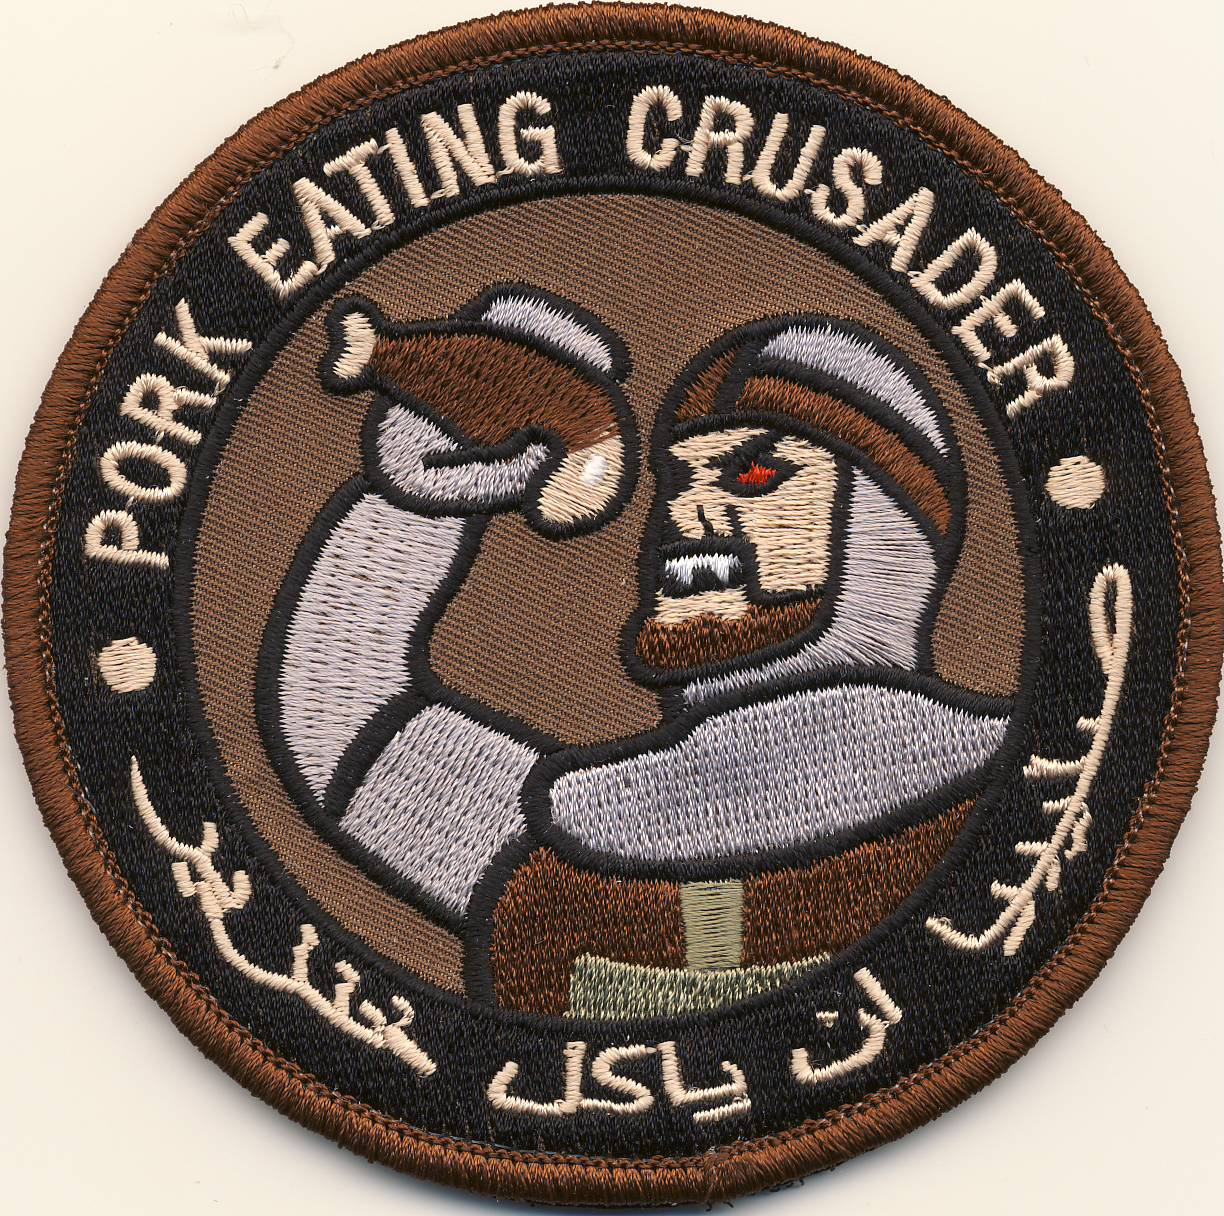 Pork Eating Crusader Patch